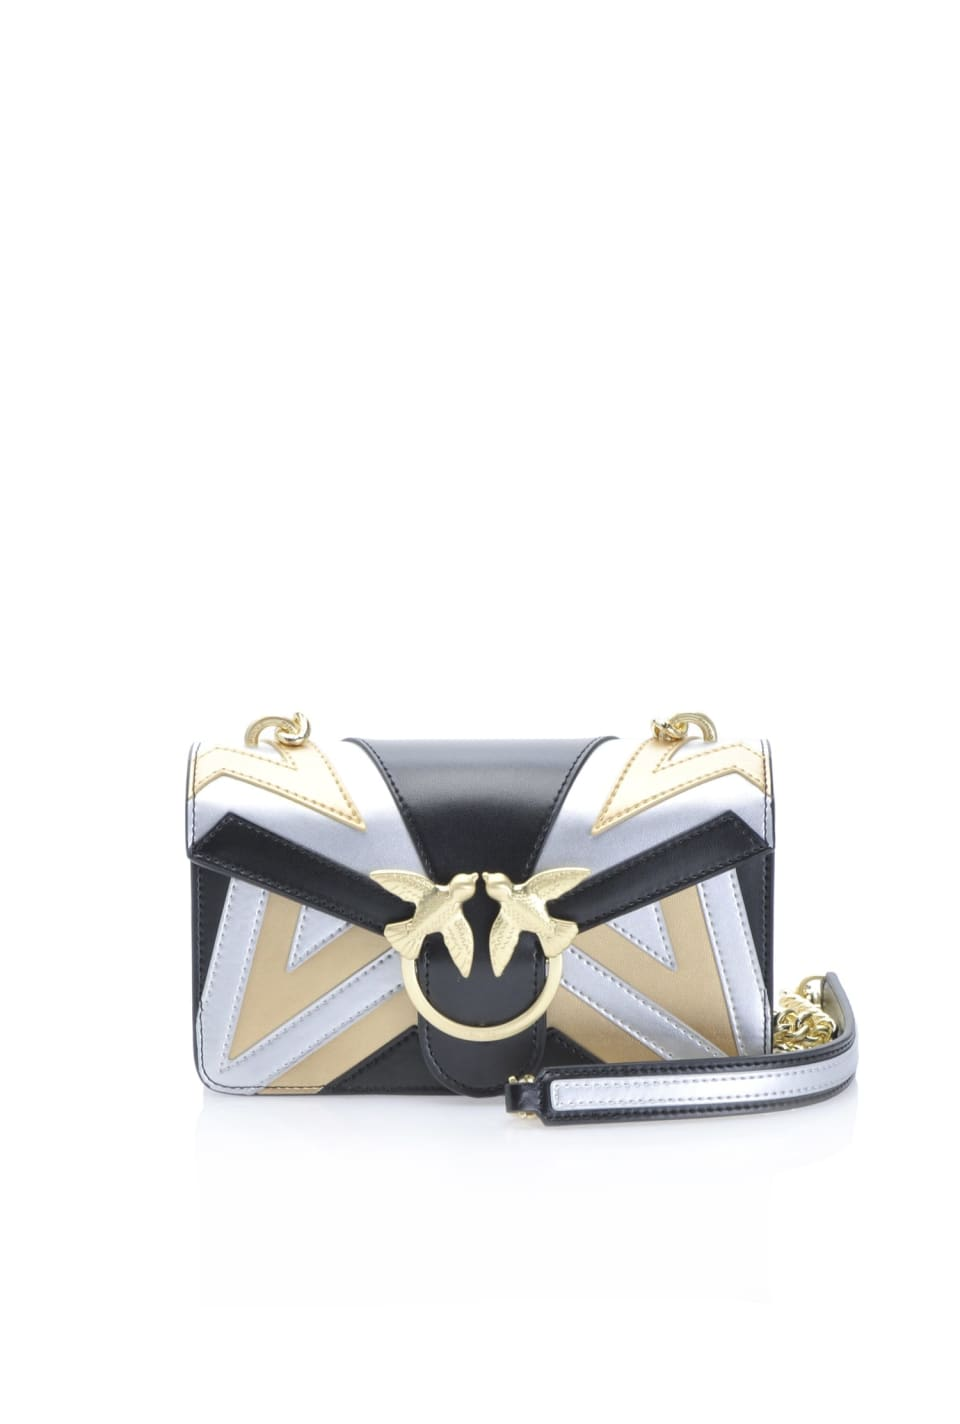 Chevron Mini Love Bag in laminated leather